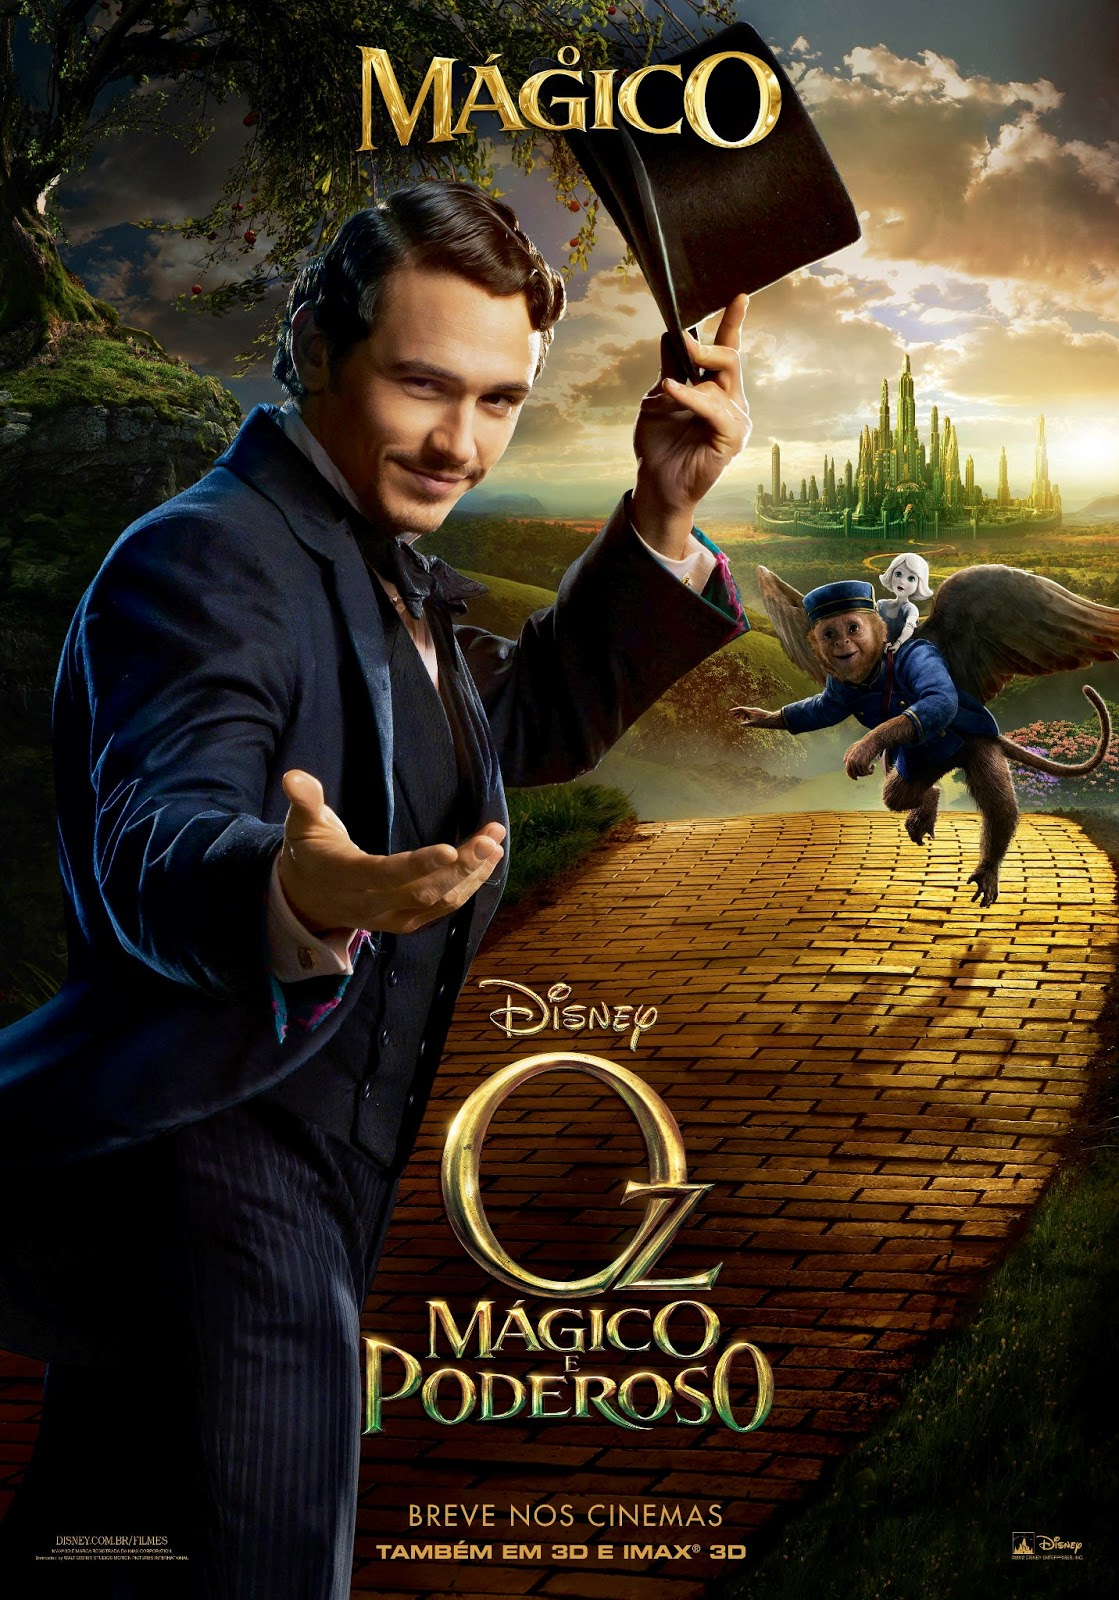 Oz: Mágico e Poderoso (Oz the Great and Powerful) 2013 Dublado   Torrent   Baixar via Torrent